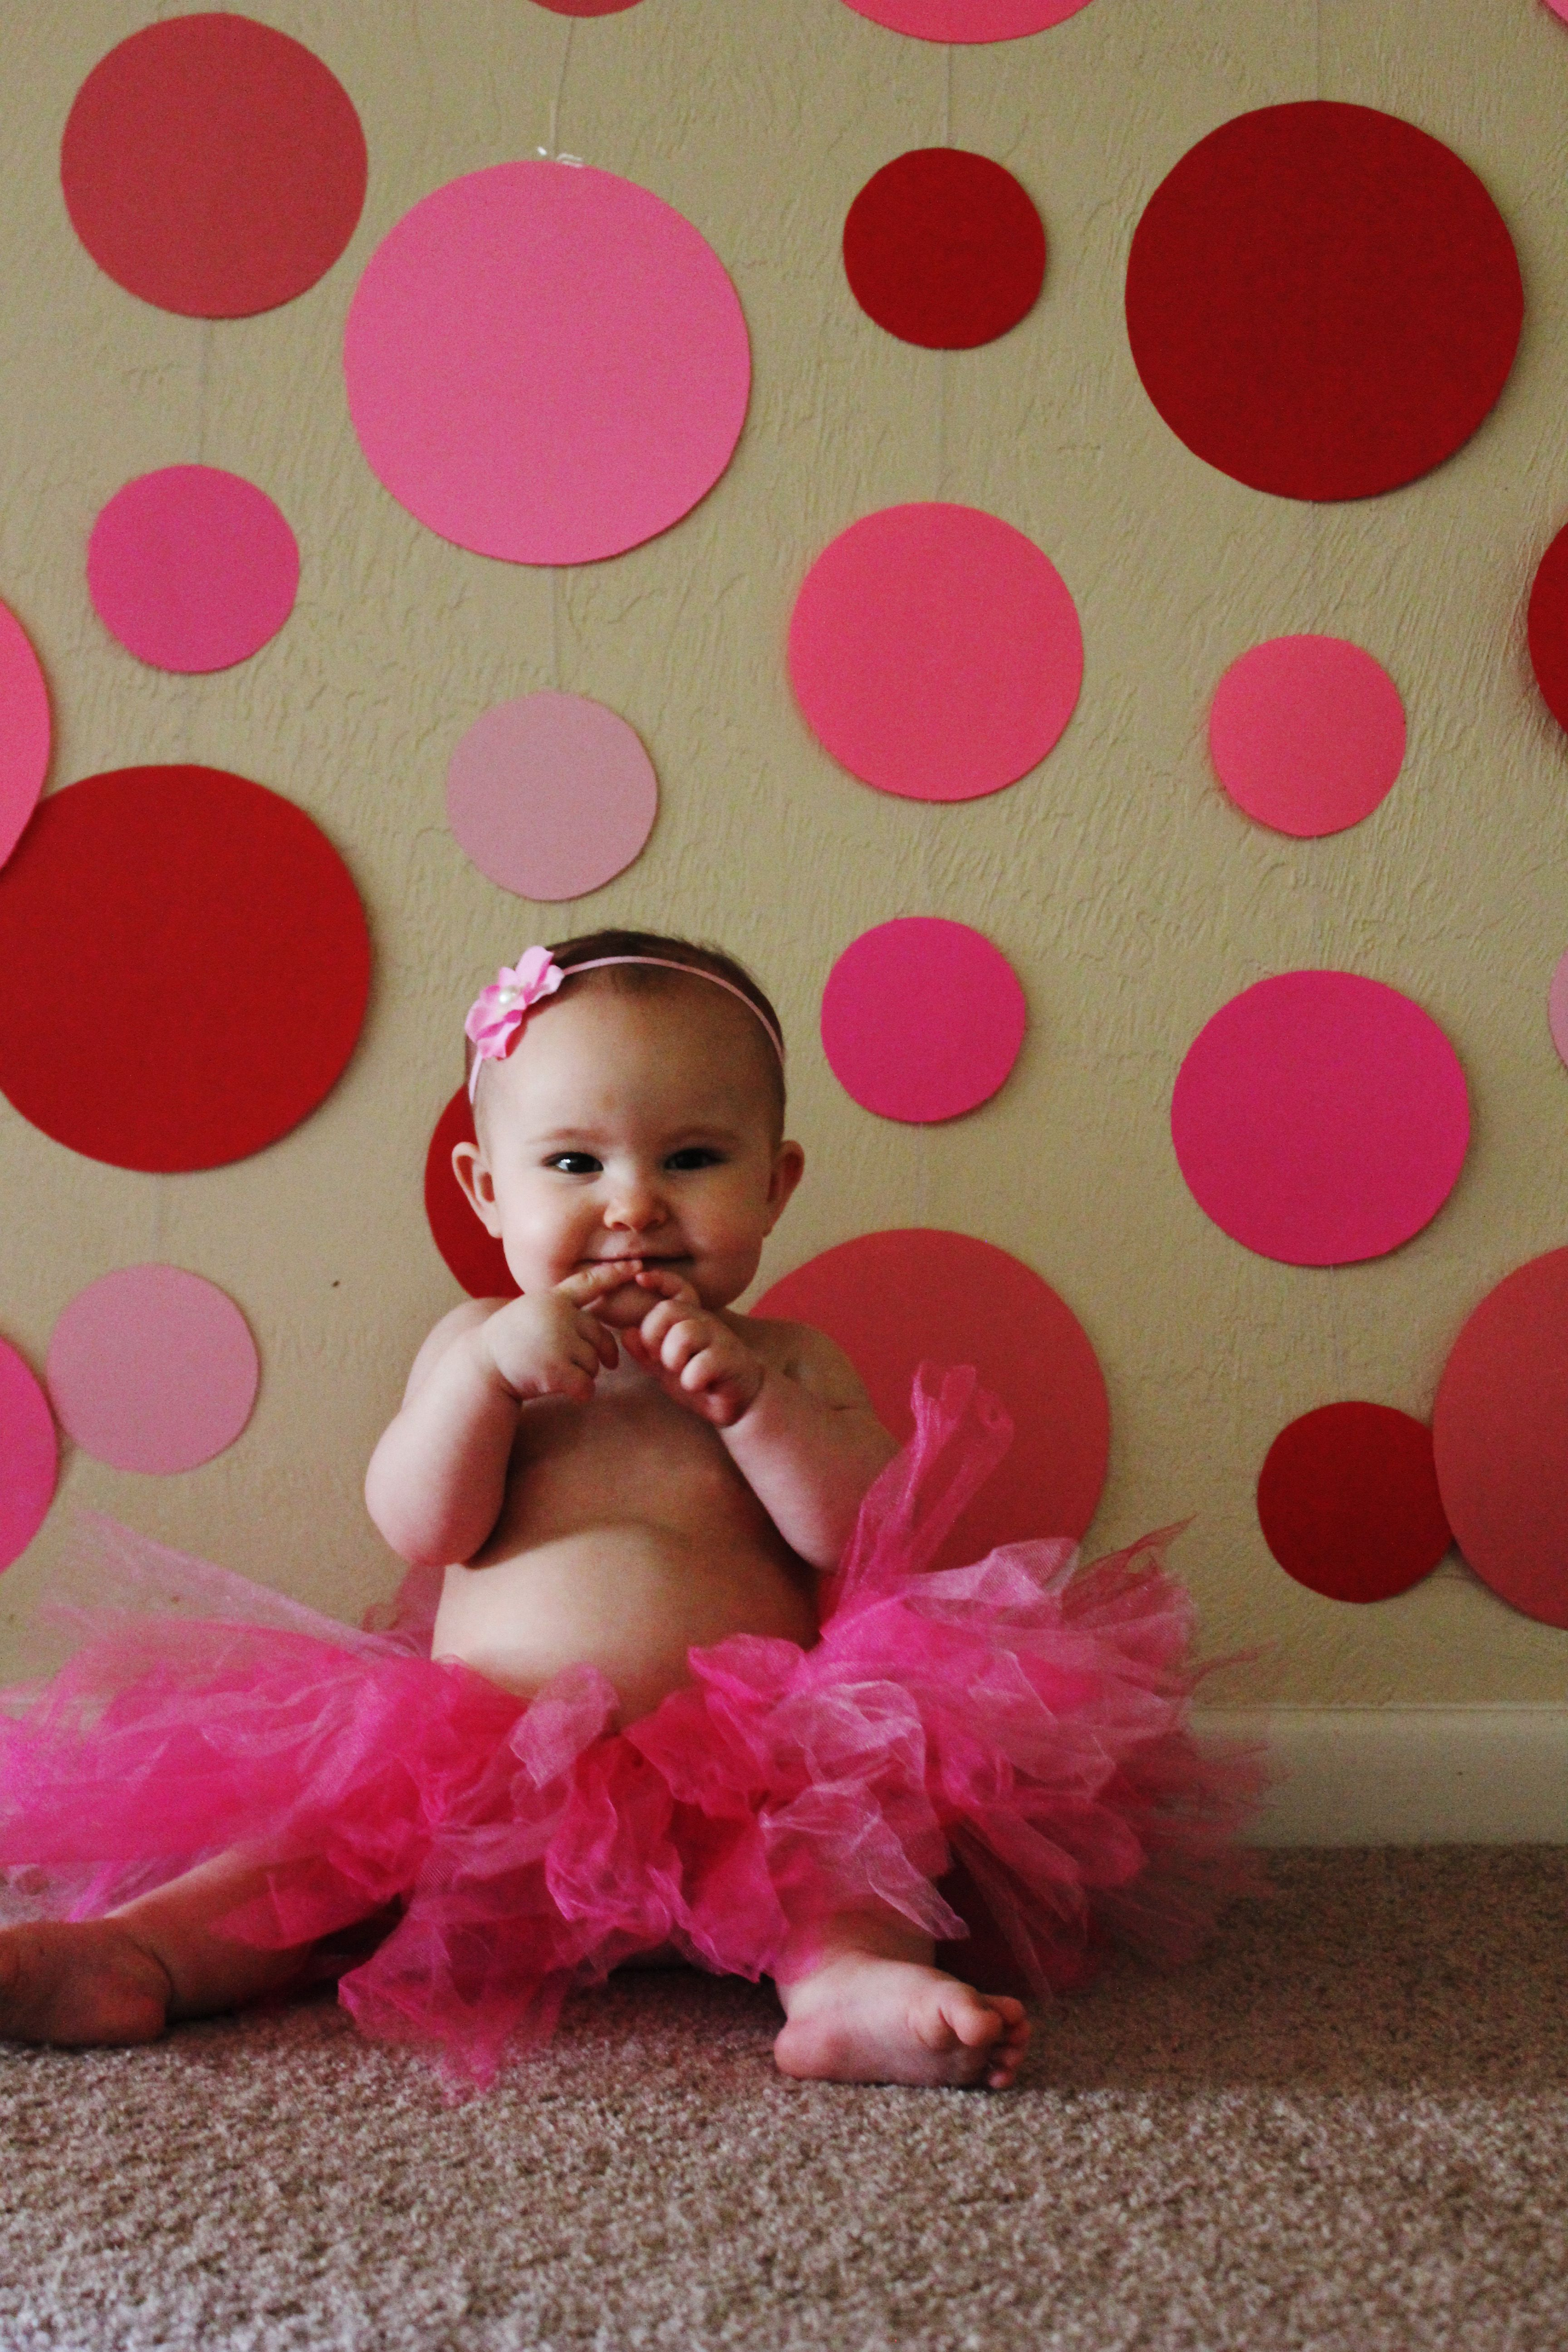 9c0017819 #baby #photography Make a fun backdrop with colored paper circles hung on  string for baby photos and Valentine's Day.